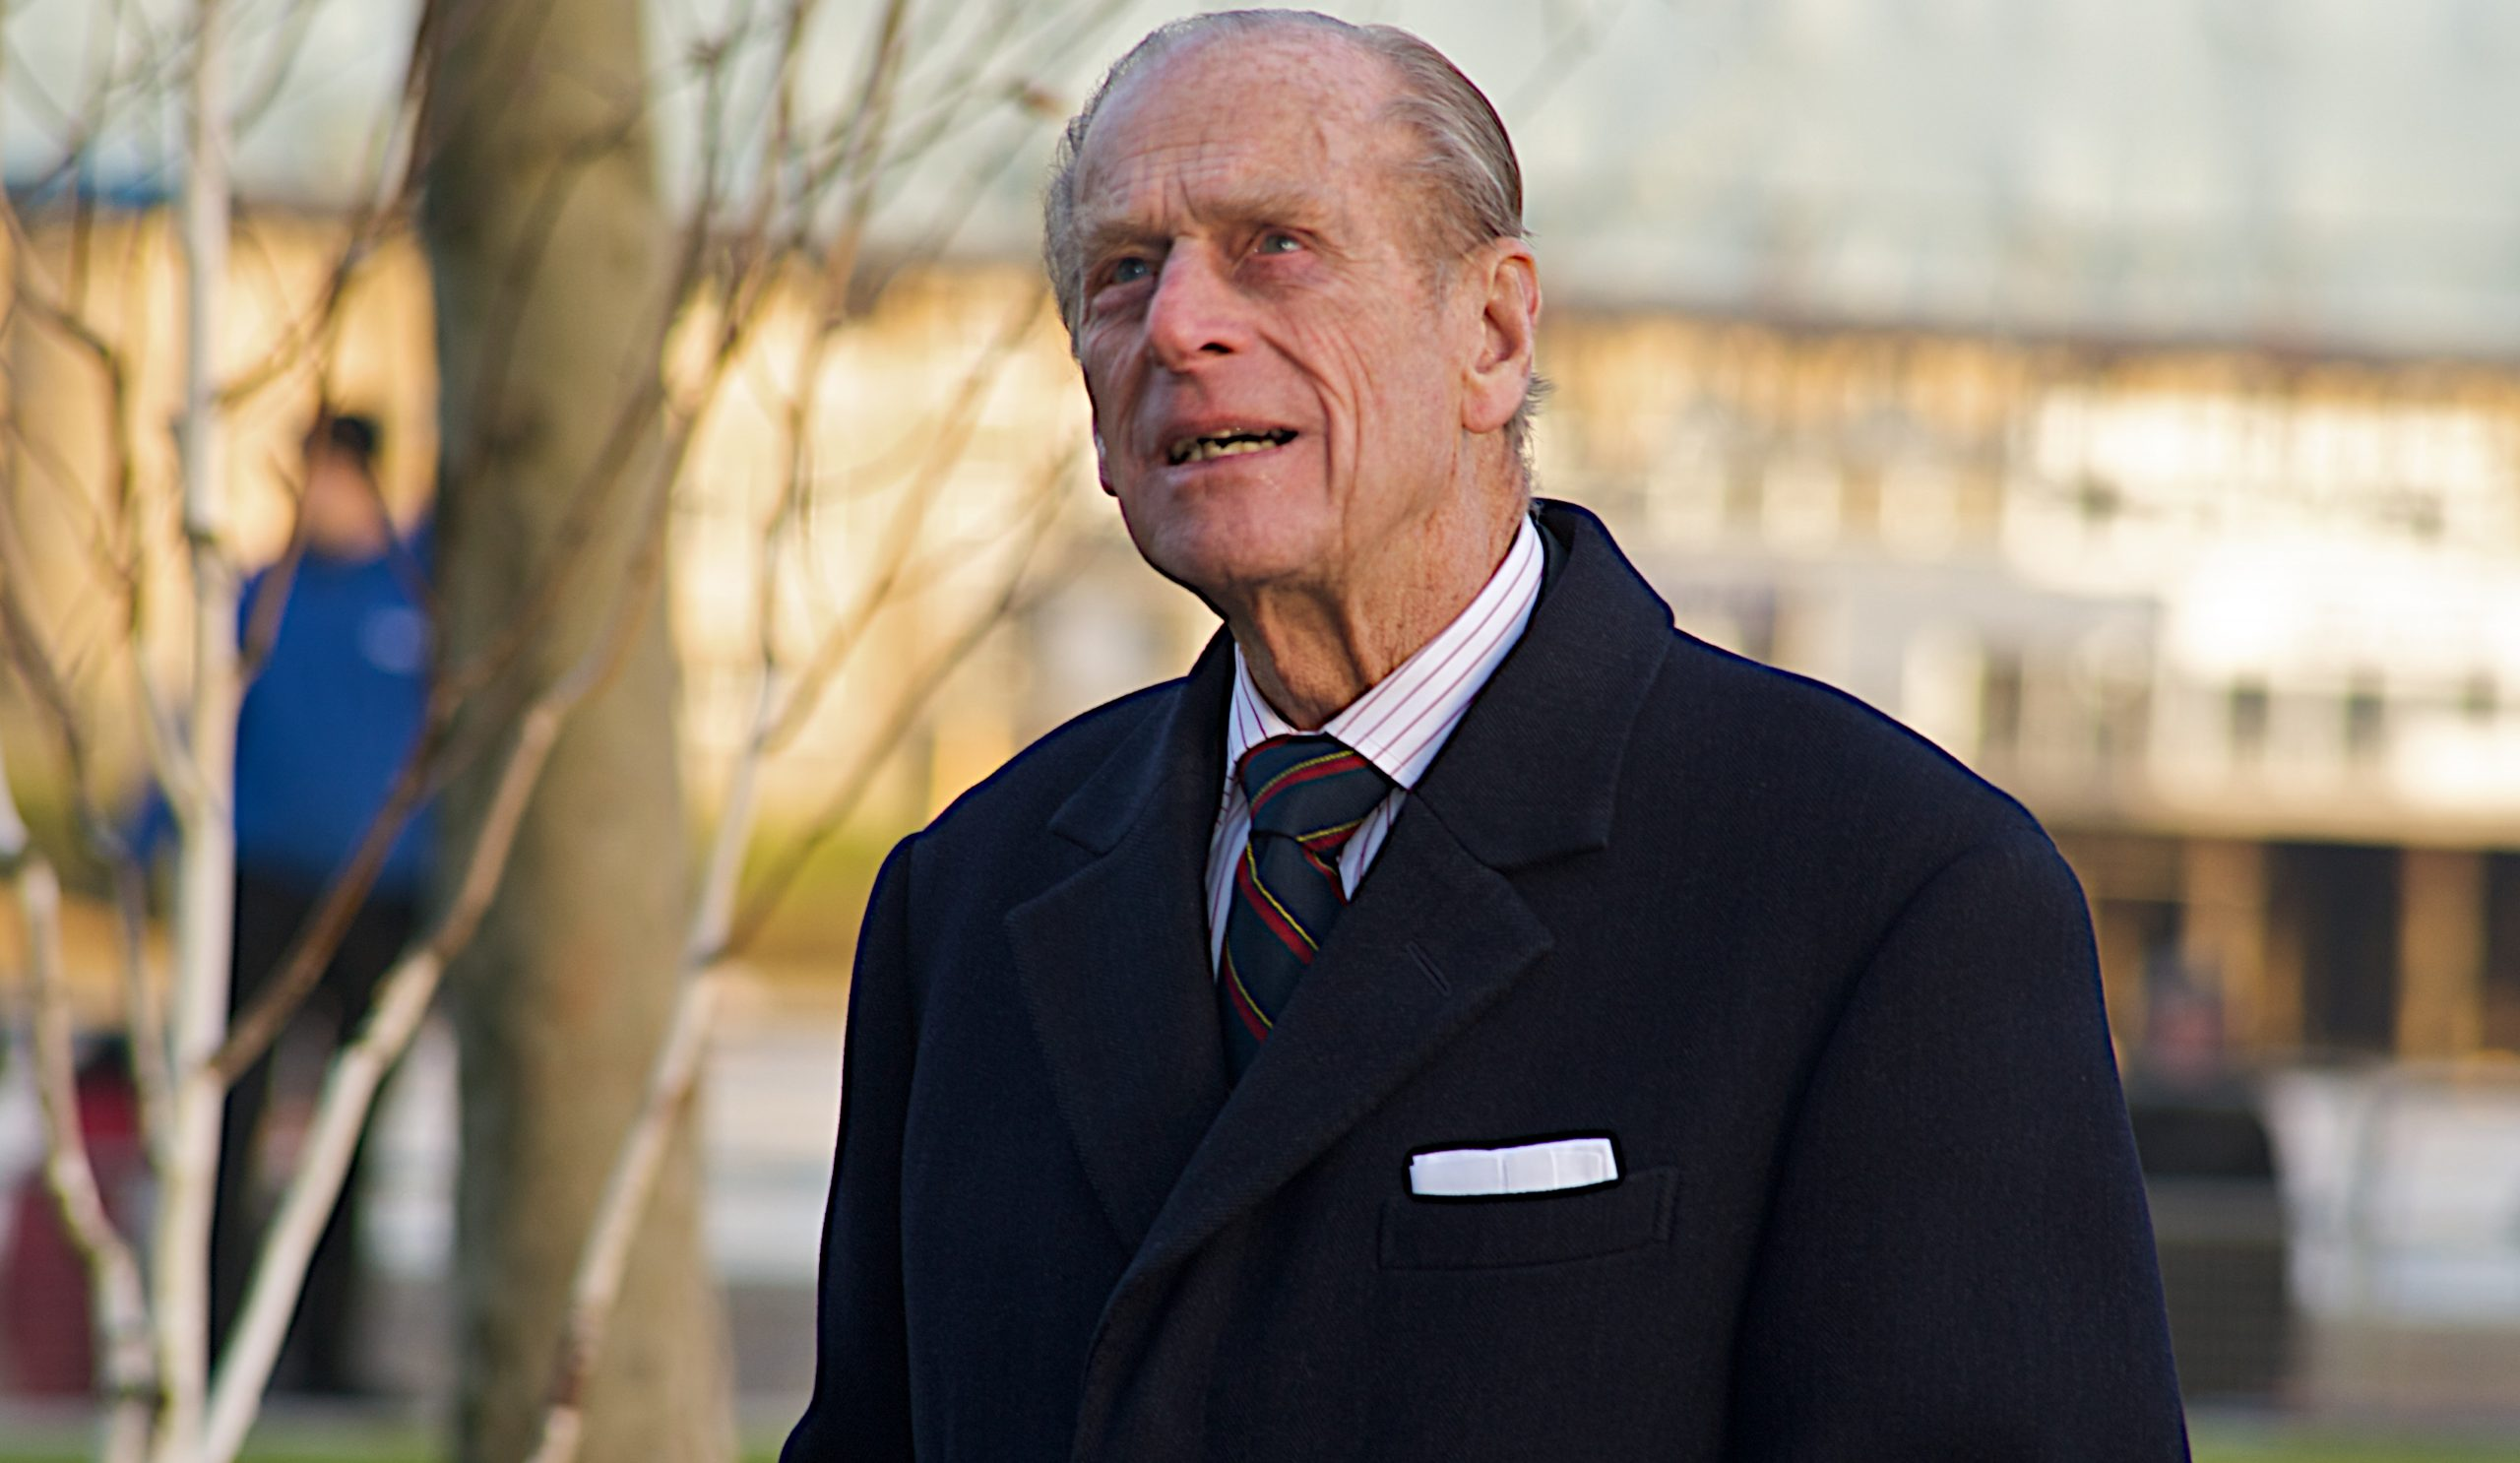 Prince Philip's first ever patronage issue a statement ...